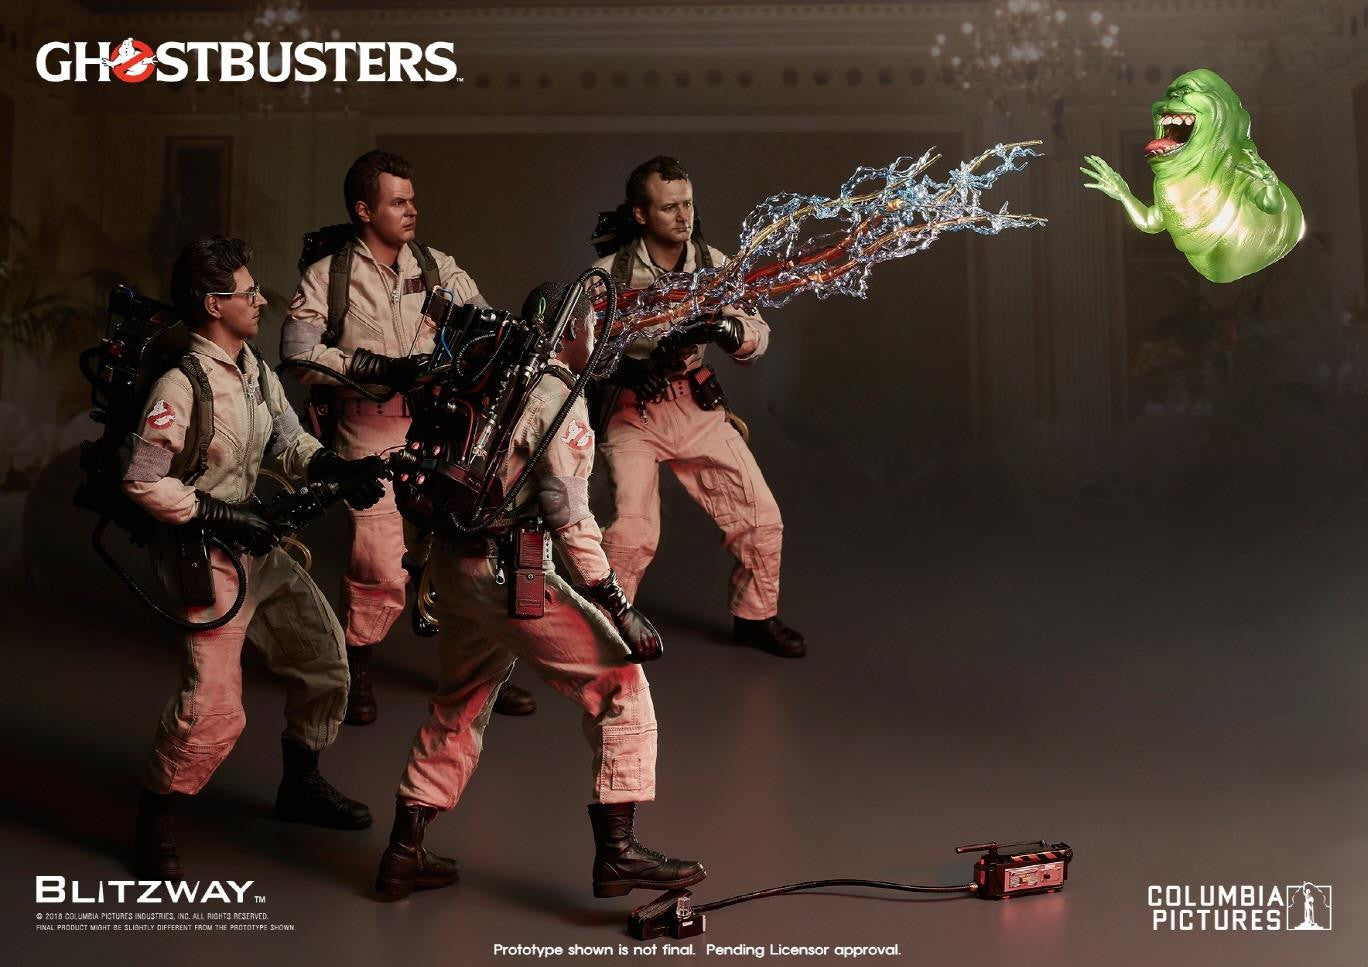 Blitzway - Ghostbusters 1984 Special Pack - Marvelous Toys - 1